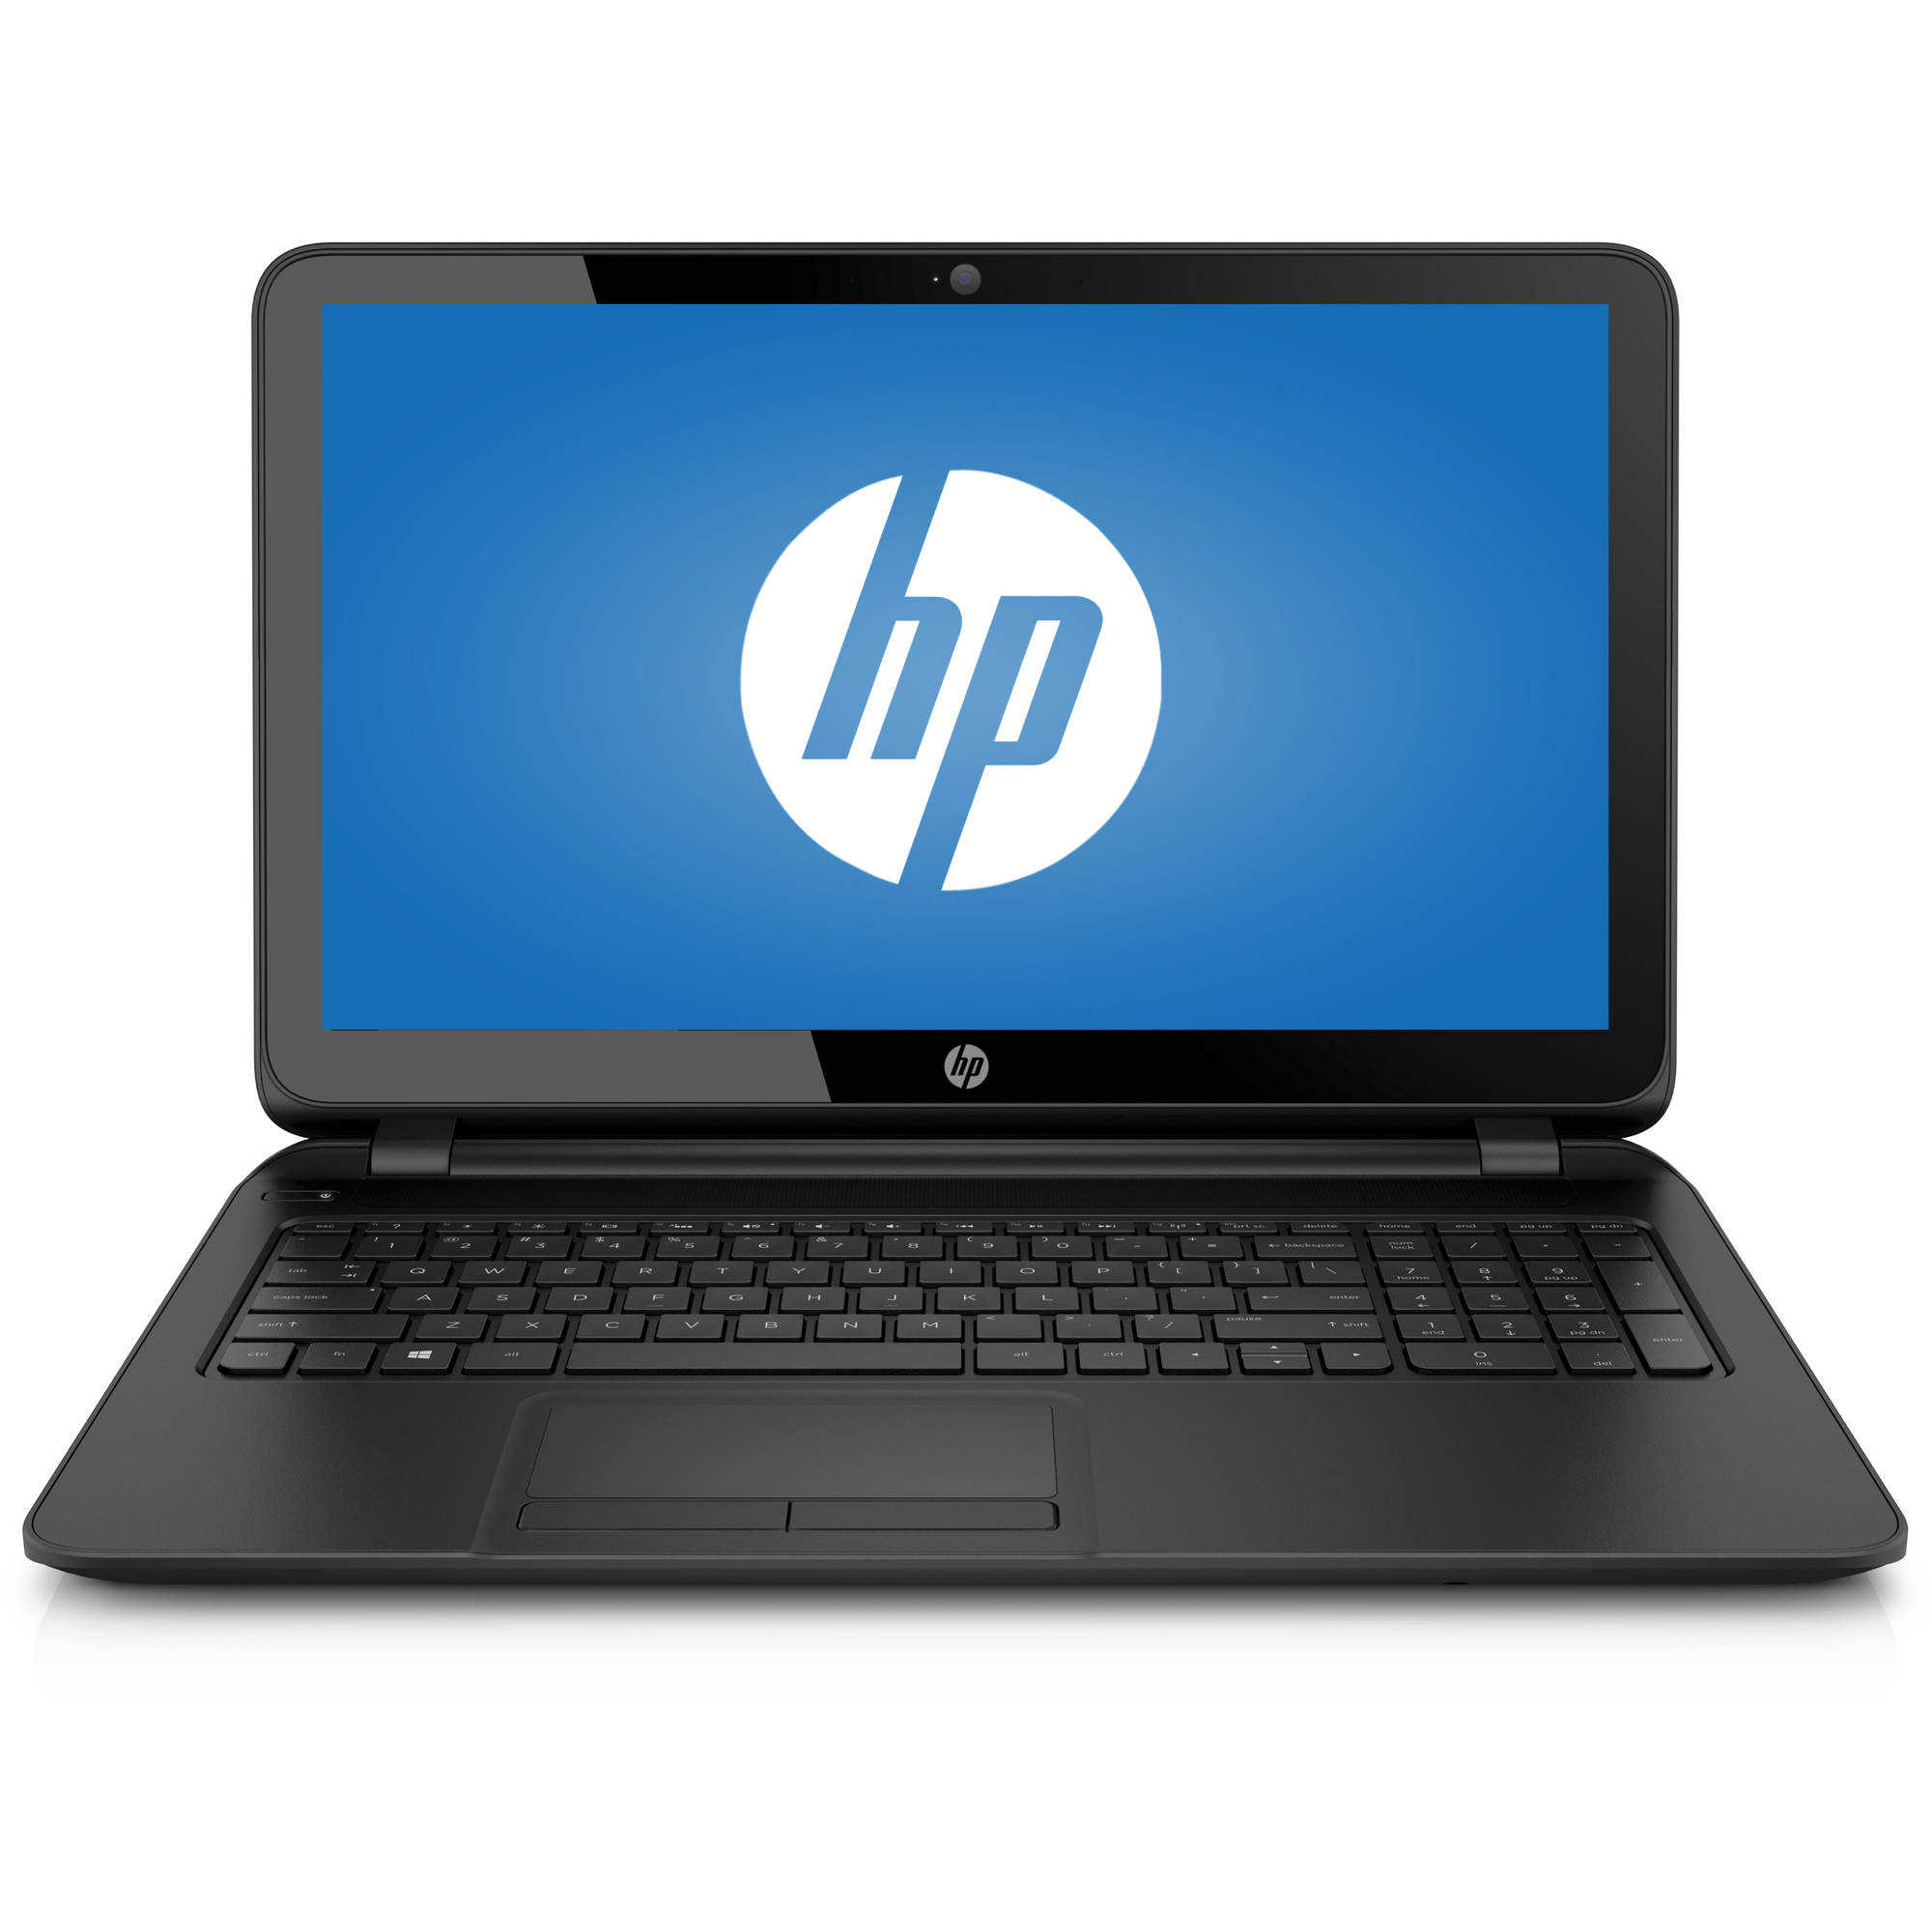 HP Black Licorice 15.6' 15-F387WM Laptop PC with AMD A8-7410 Processor, 4GB Memory, touch screen, 500GB Hard Drive and Windows 10 Home